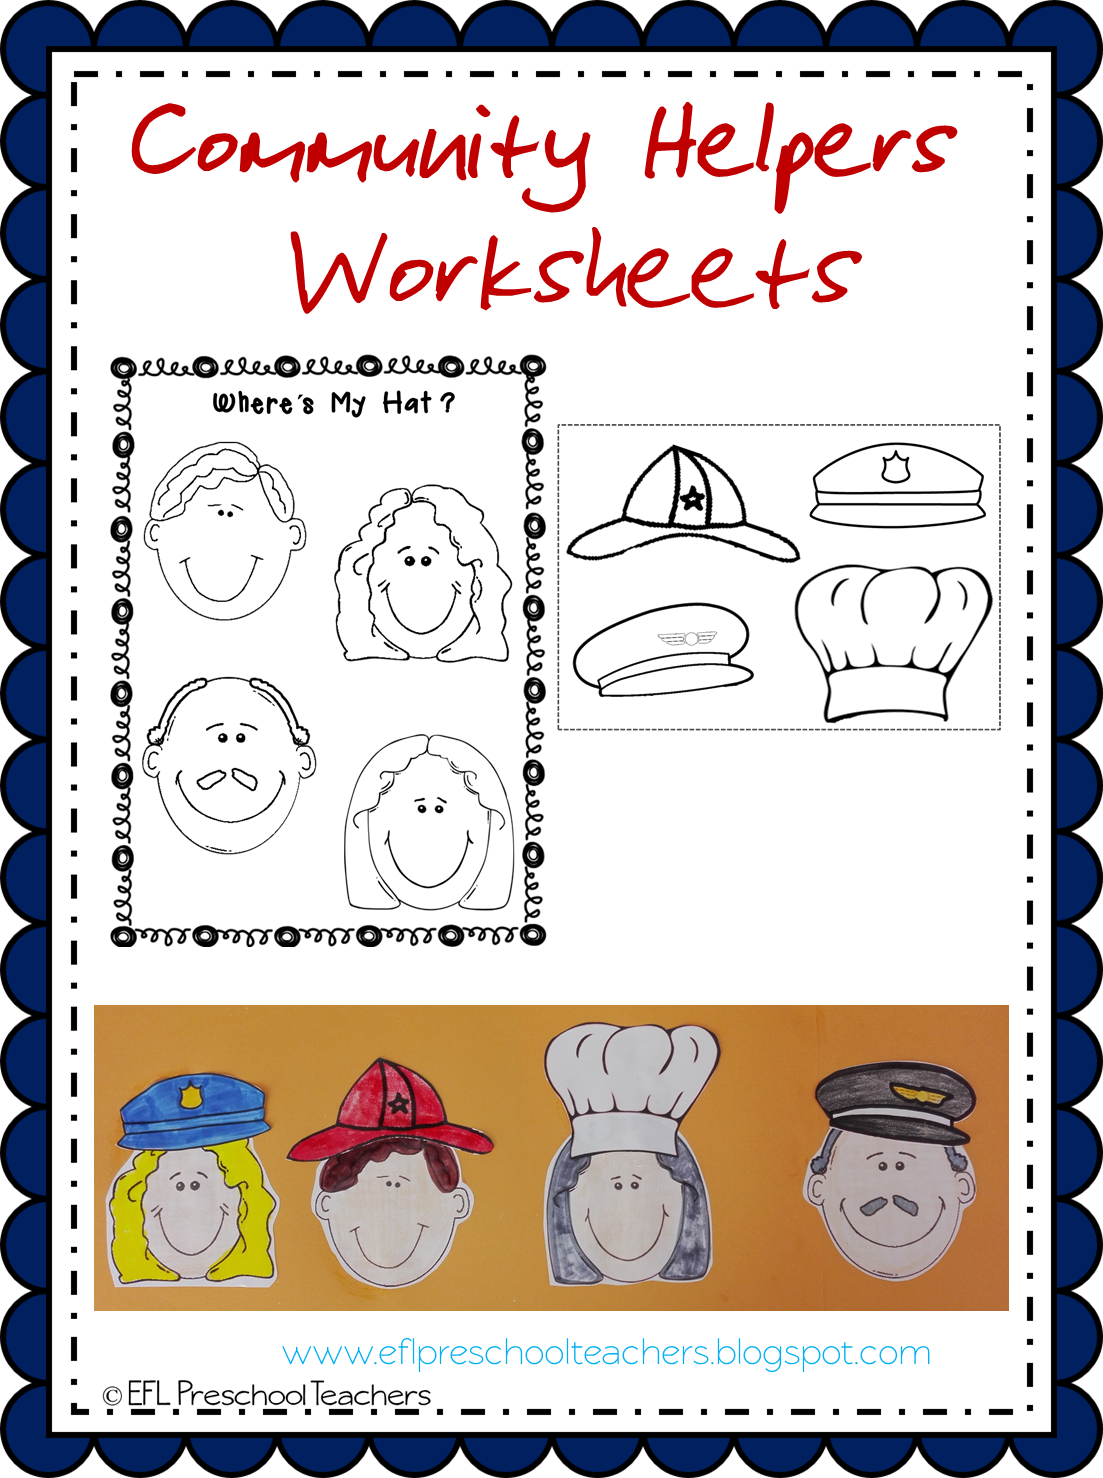 Worksheets Teacher Helper Worksheets introduce creativity in to our lesson plan let your eslefl preschool teachers community helpers worksheets and